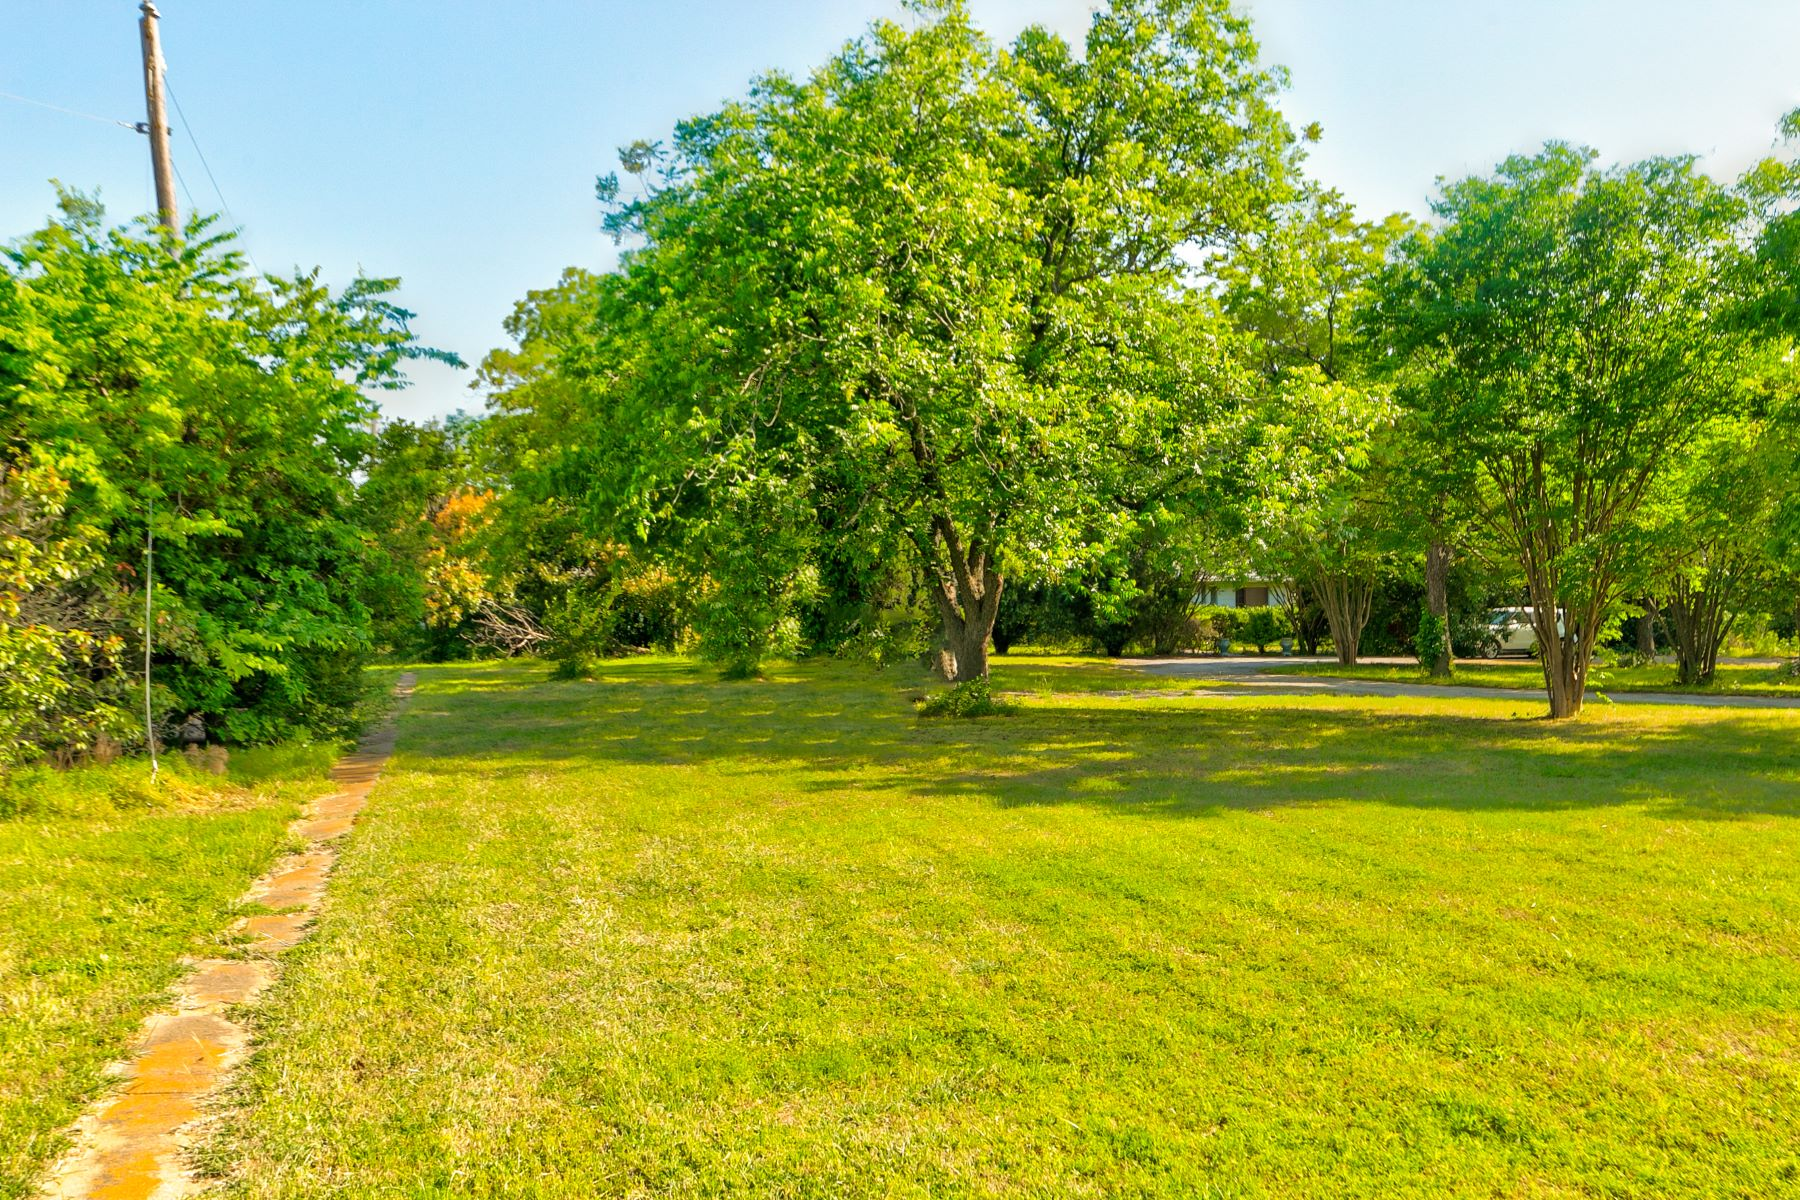 Land for Sale at 2.85 Acres- Residential or Industrial Zoned Land 2311 Crooked Lane Southlake, Texas 76092 United States